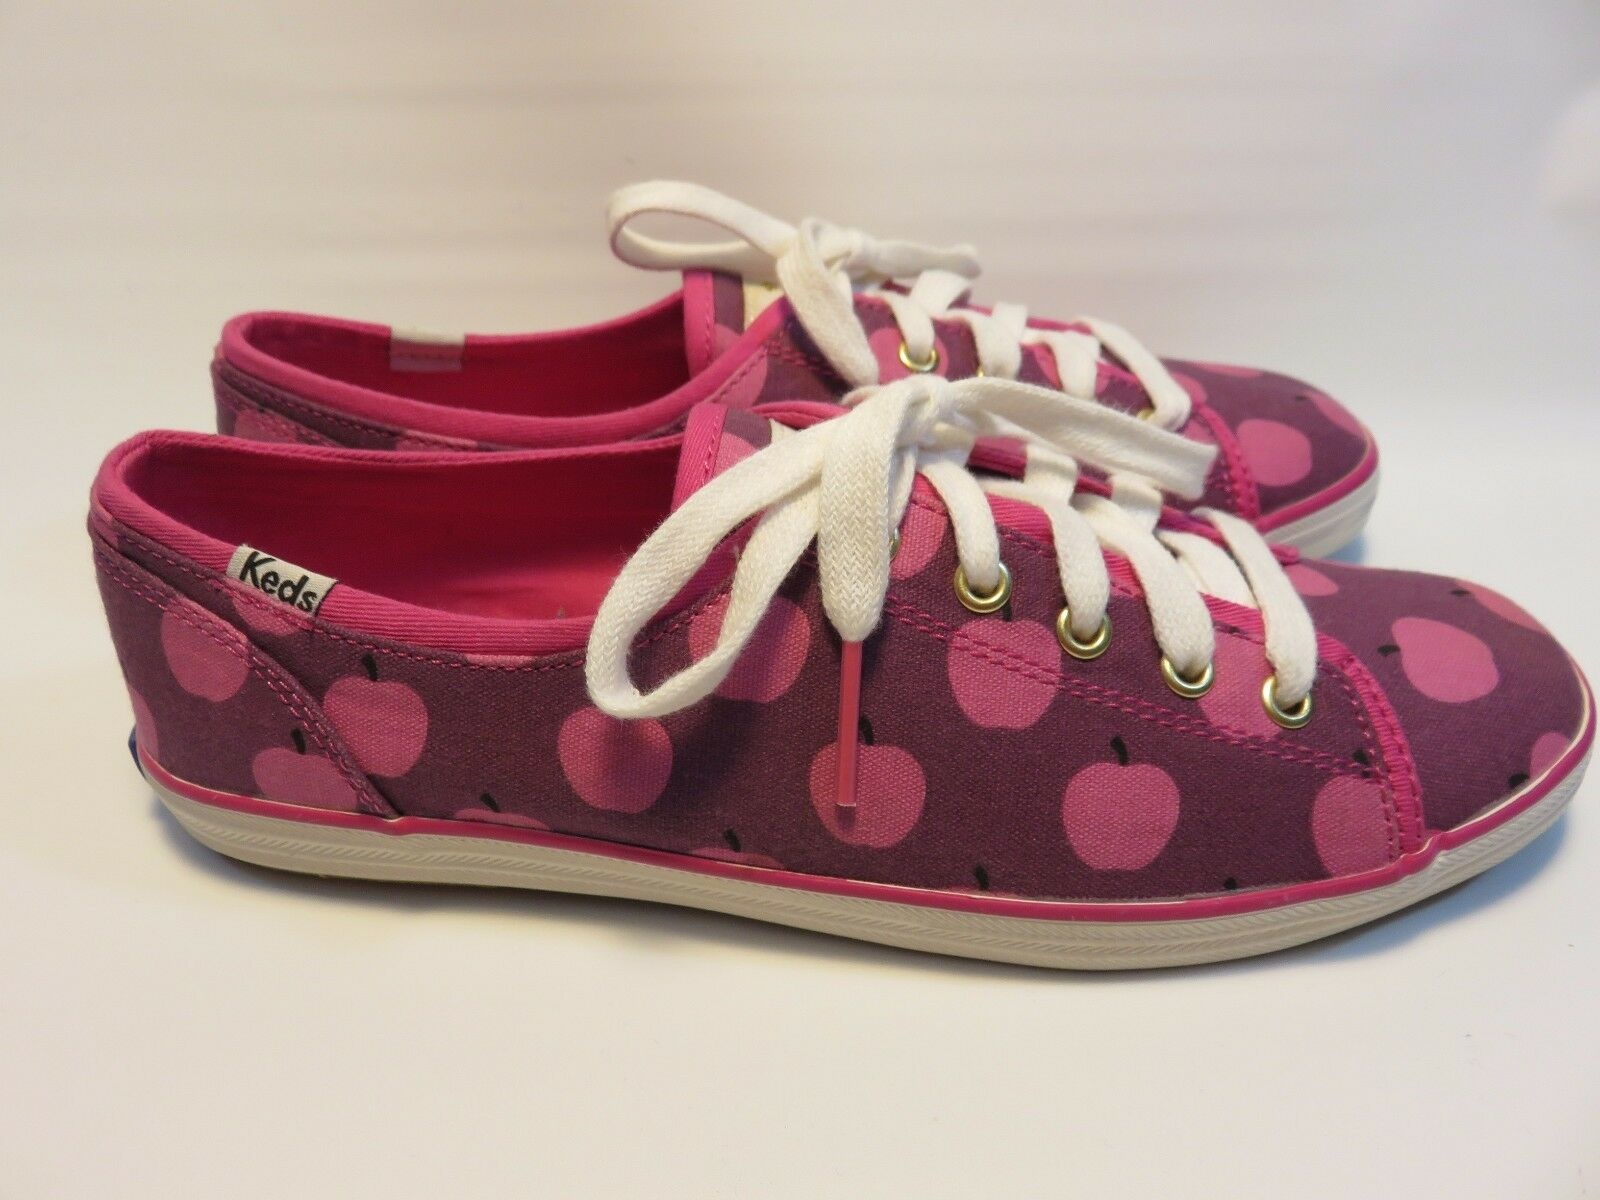 Kate Spade New York Keds Pink Apple Sneakers Size 7.5; New without Box